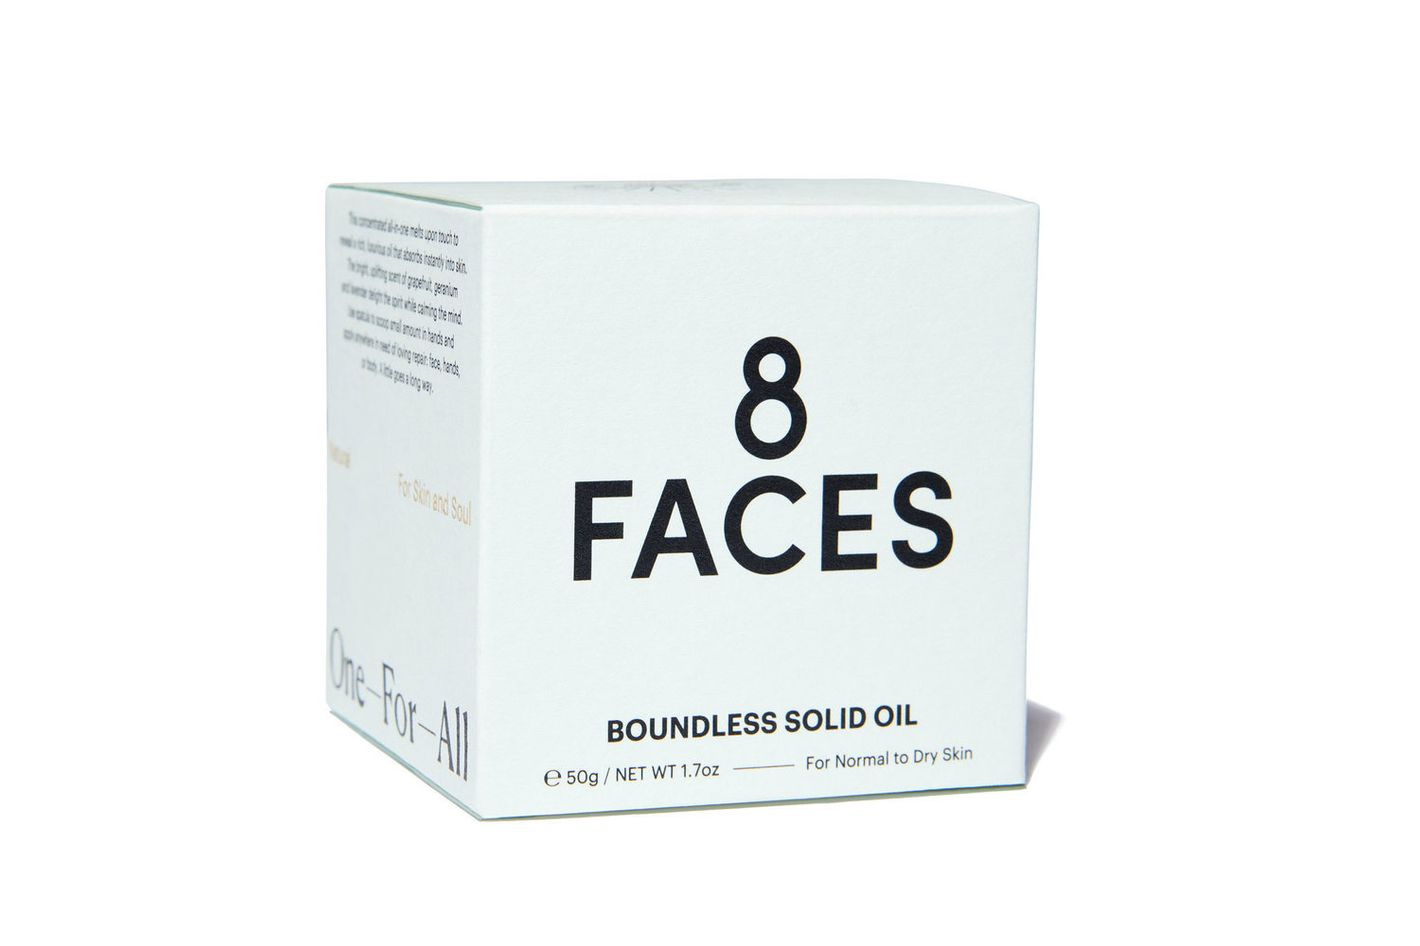 Boundless Solid Oil